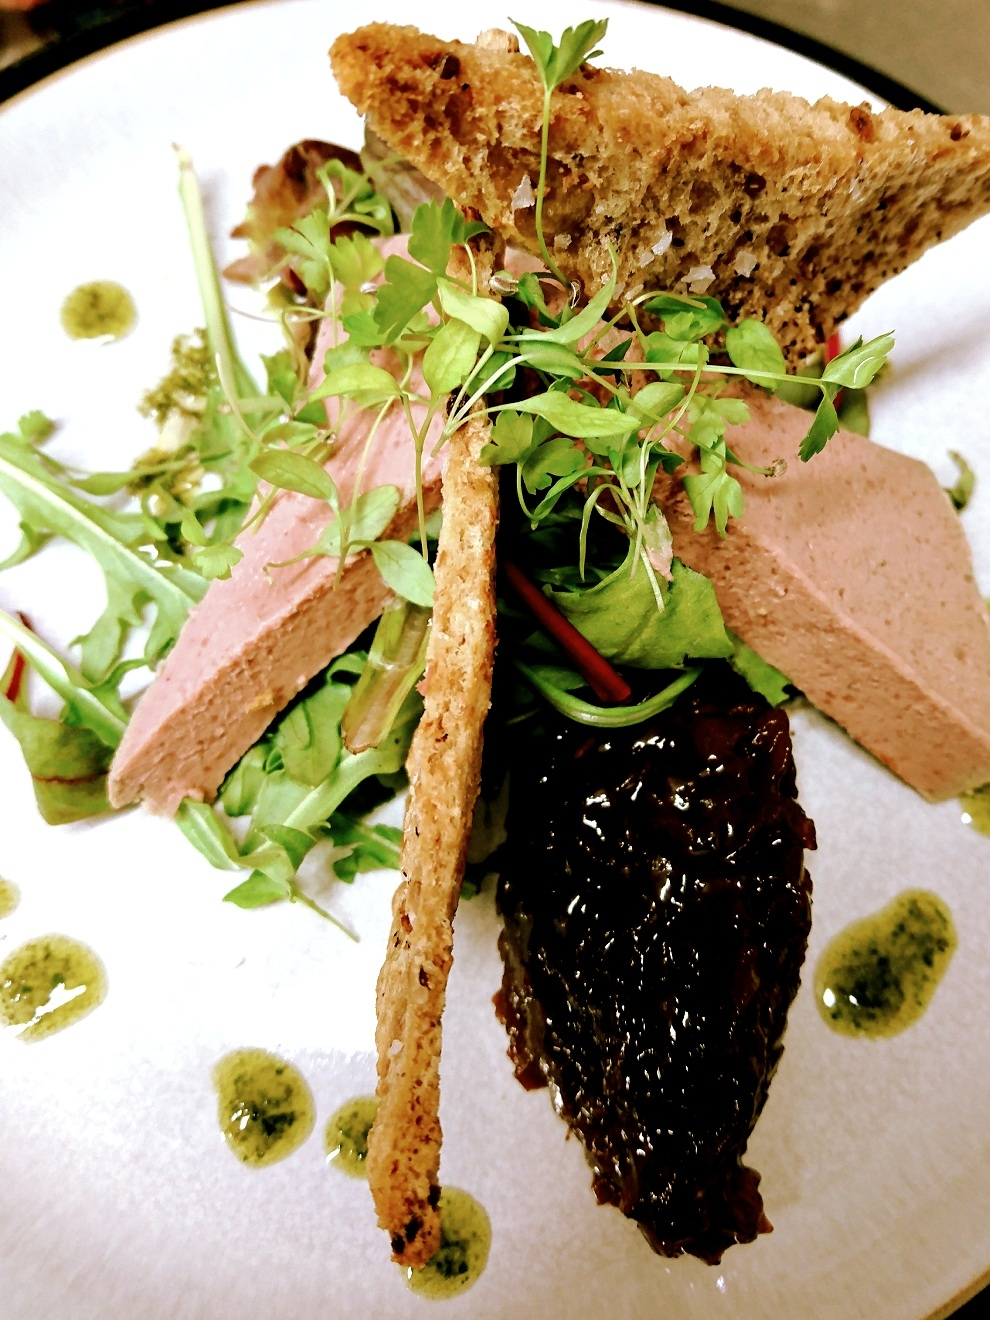 Chicken & duck liver parfait on bed of rocket, red onion marmalade basil oil, homemade rye wafers